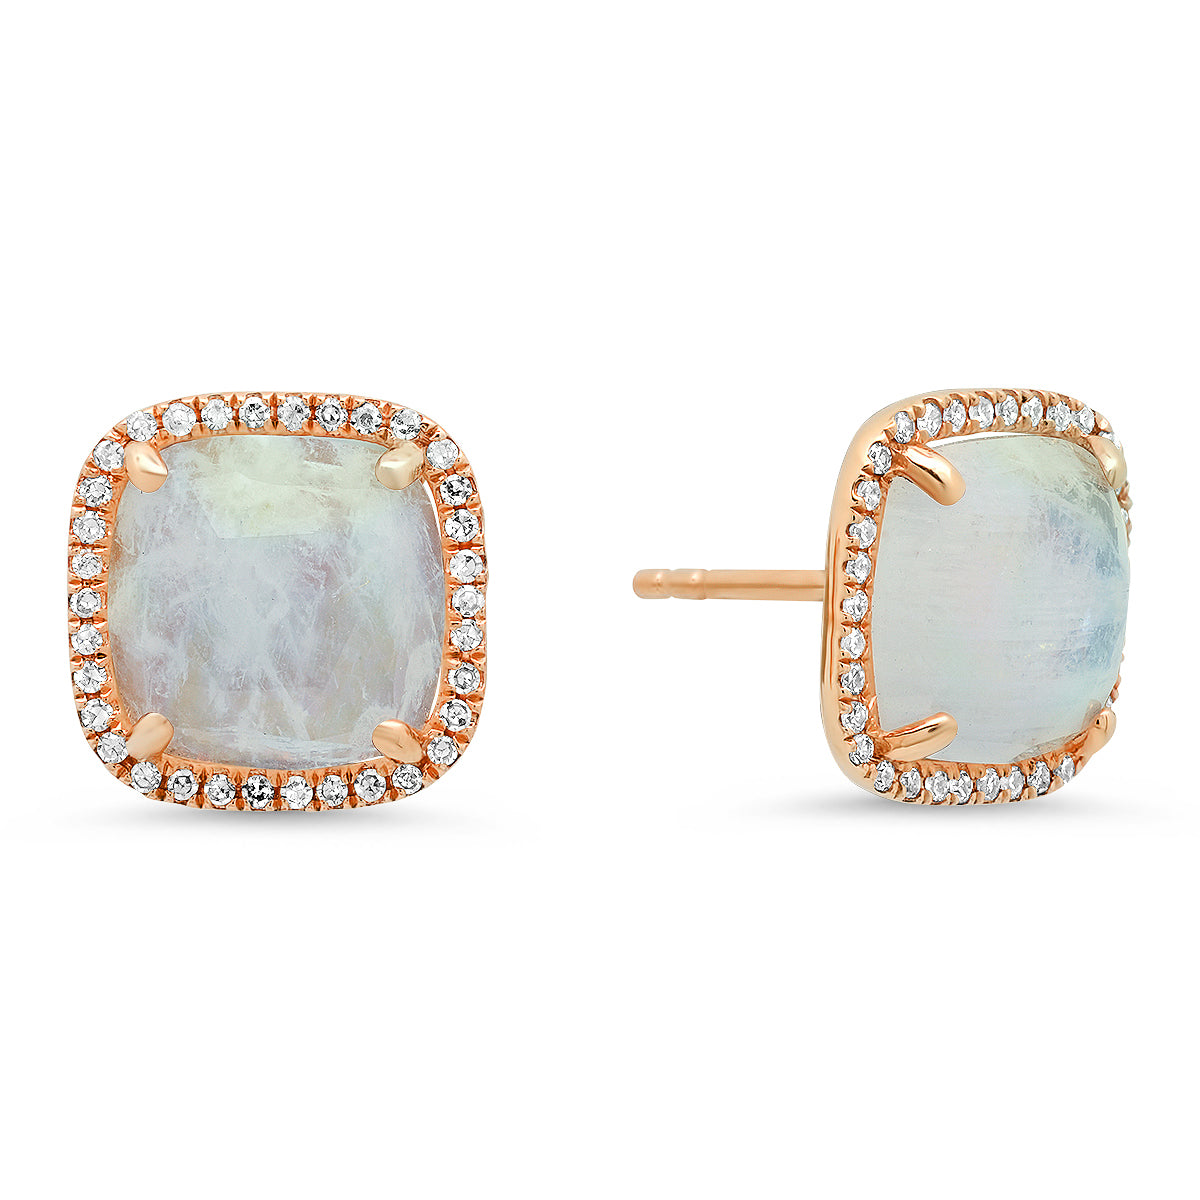 Cushion Cut Moonstone Stud Earrings With Diamond Halo